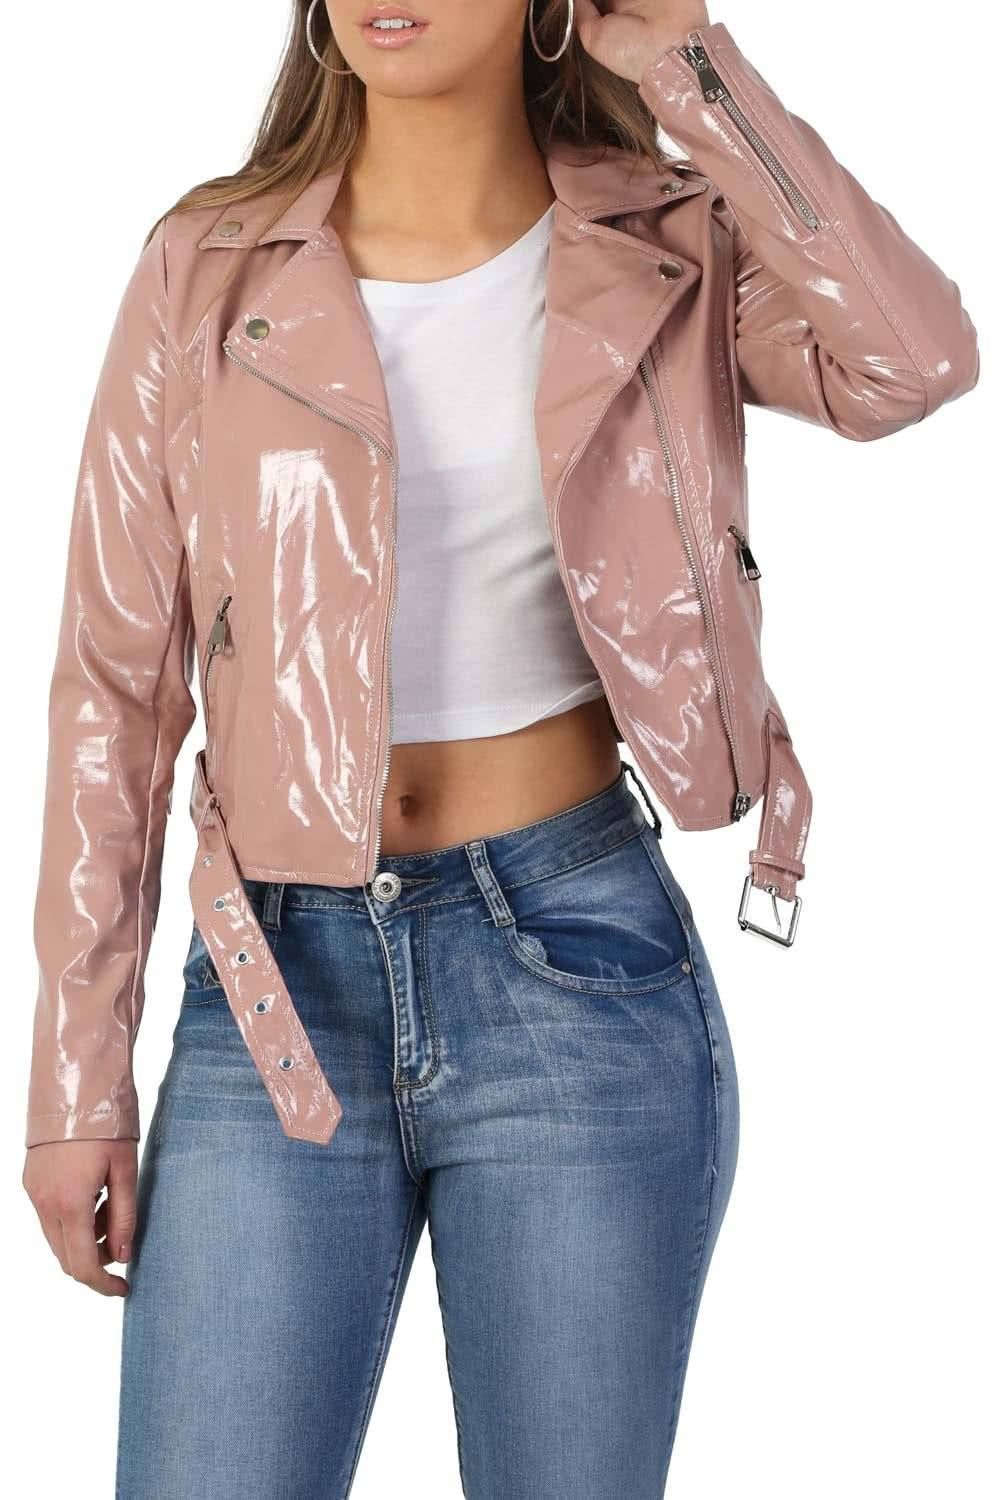 Patent Belted Biker Jacket in Dusty Pink 5